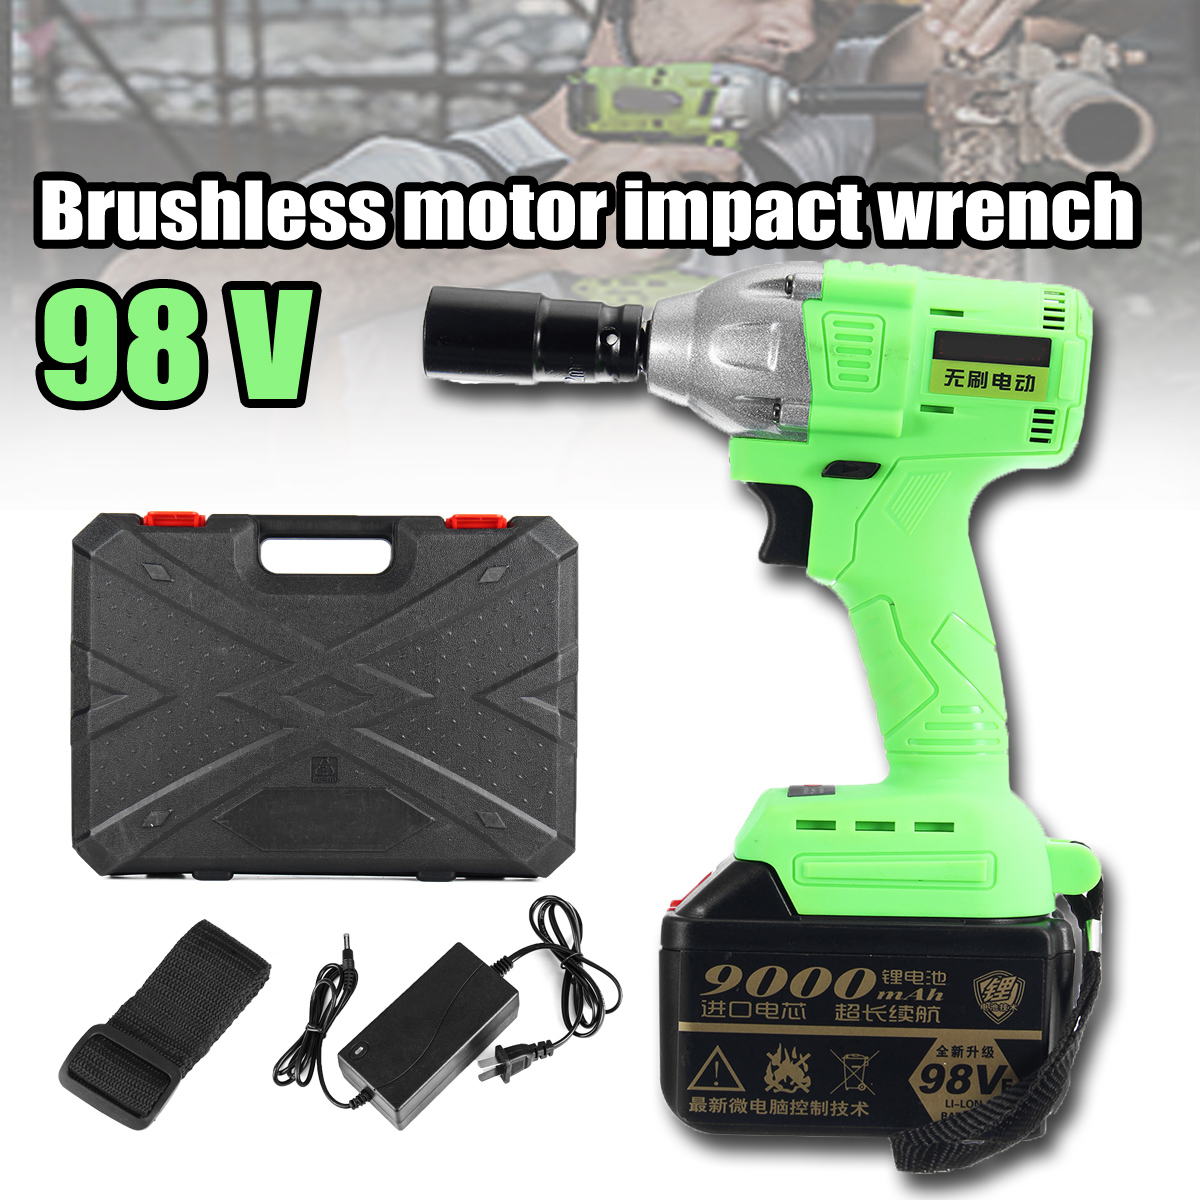 Cordless Electric Wrench 520Nm High Torque 98V Li-ion Impact Wrench Brushless with 2 Battery 220V Power Tool electric impact wrench 98 128 168 188vf electric brushless li ion battery wrench 10mm chuk with box cordless speed control power